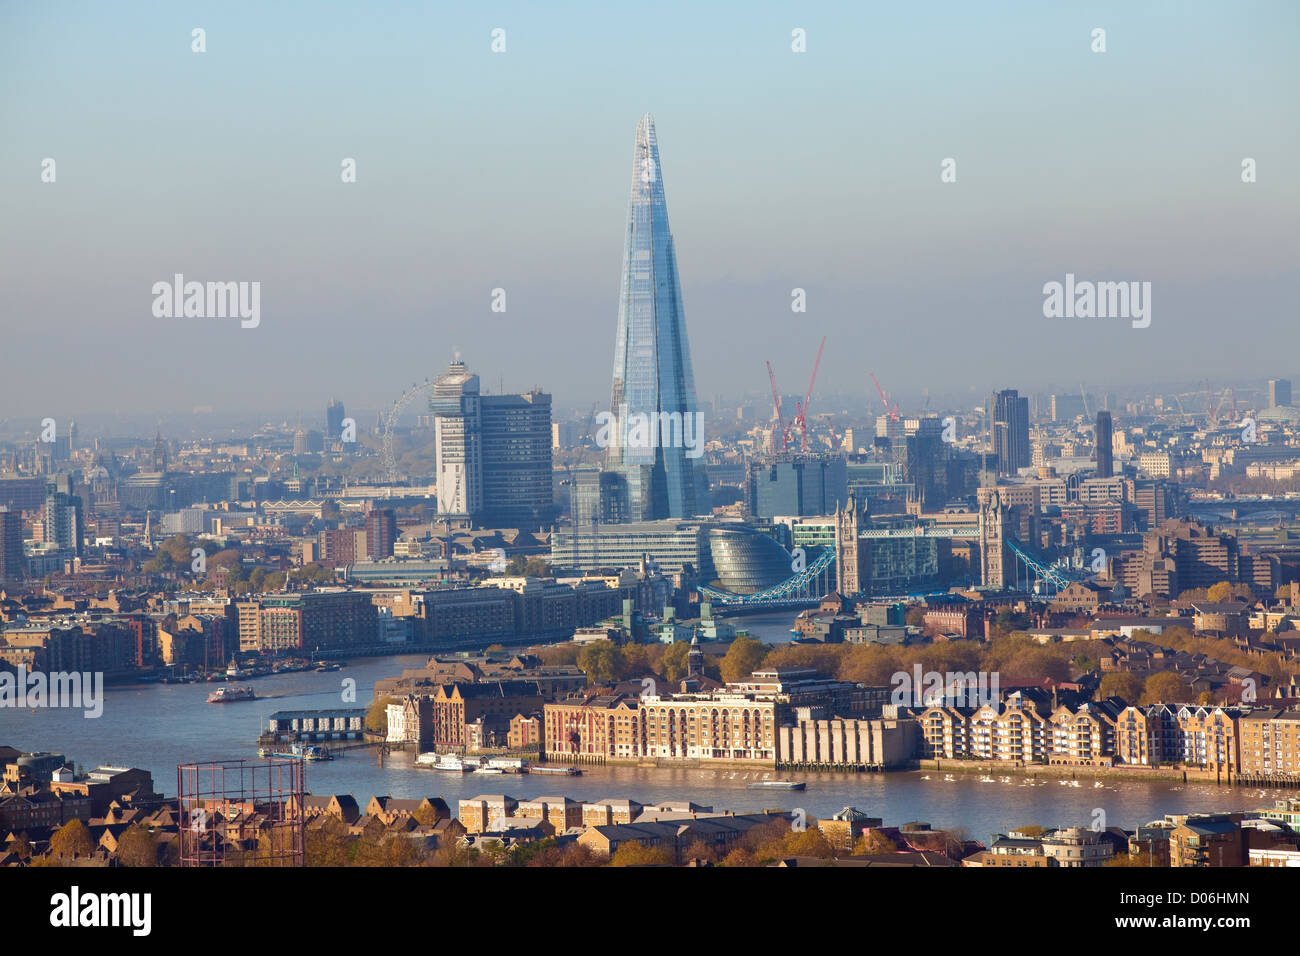 View looking west along the River Thames across to the Shard building, London from Canary Wharf, London, England, - Stock Image